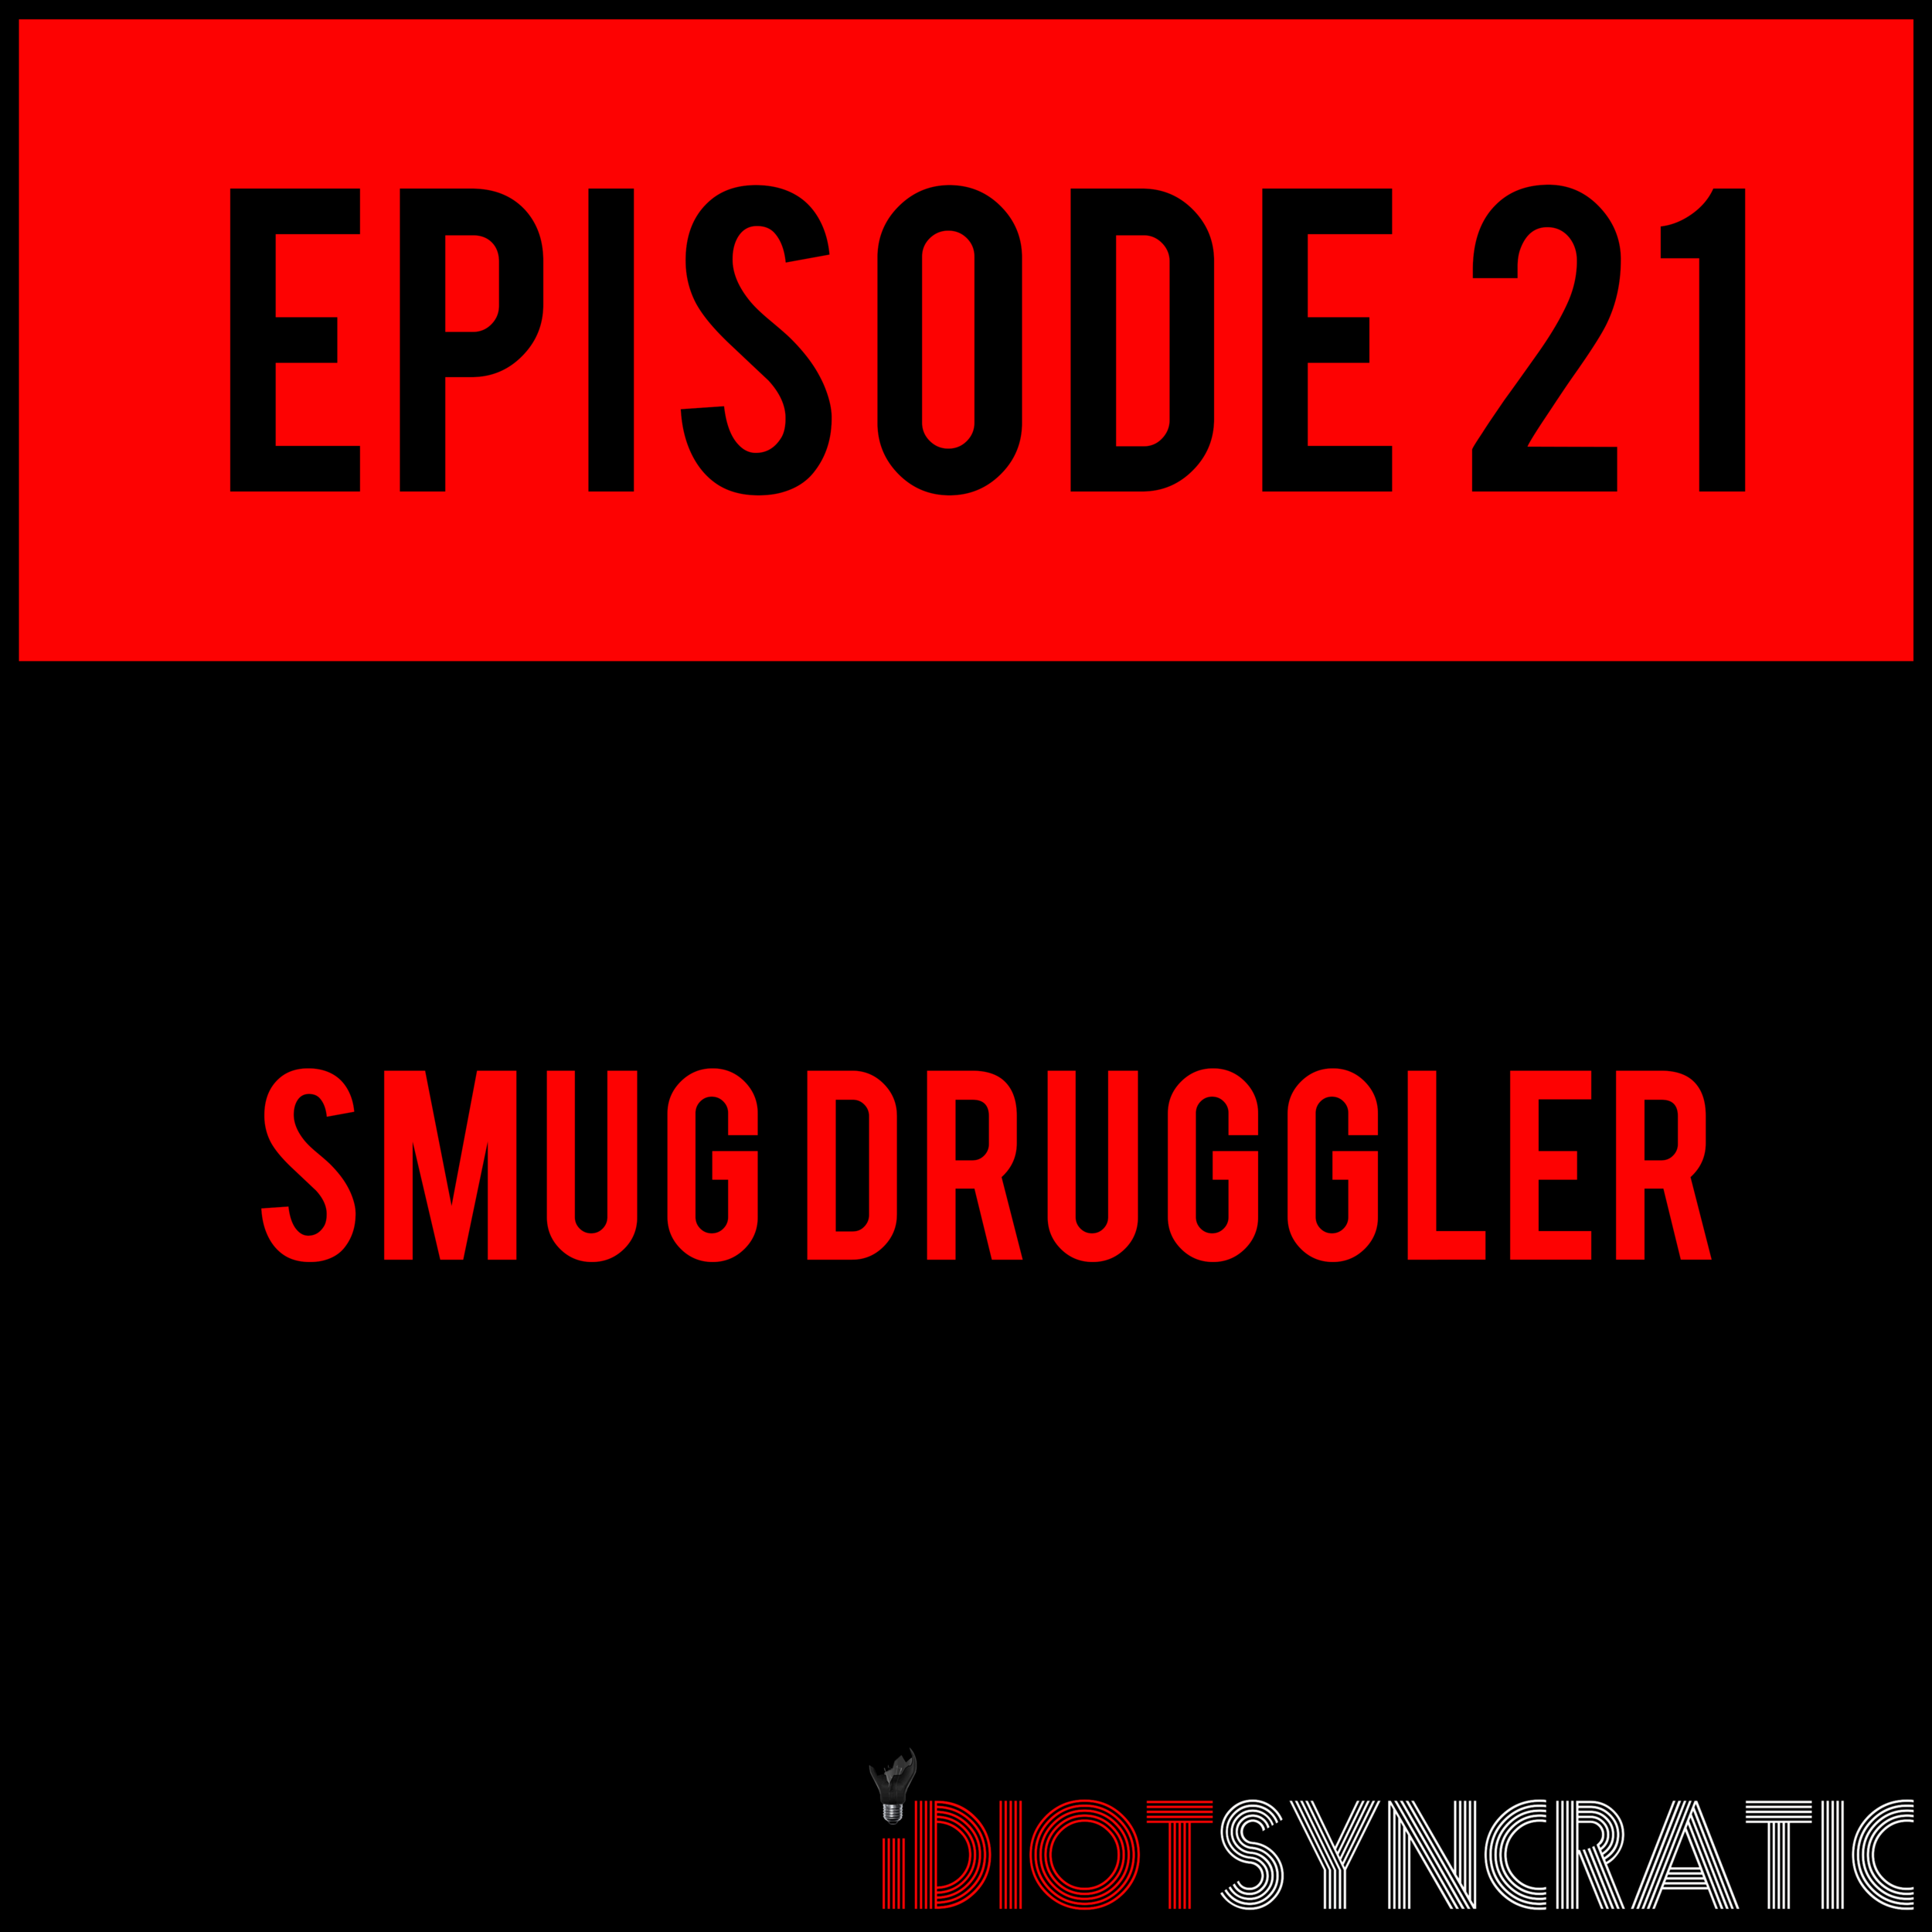 EPISODE 21 - Get them ears ready. SMUG DRUGGLER - EPISODE 21 is out and TEARING UP THE BILLBOARD CHARTS. Special thanks to our buddies at Urban Alchemy Coffee + Wine Bar for providing that sweet, sweet Blonde Roast.